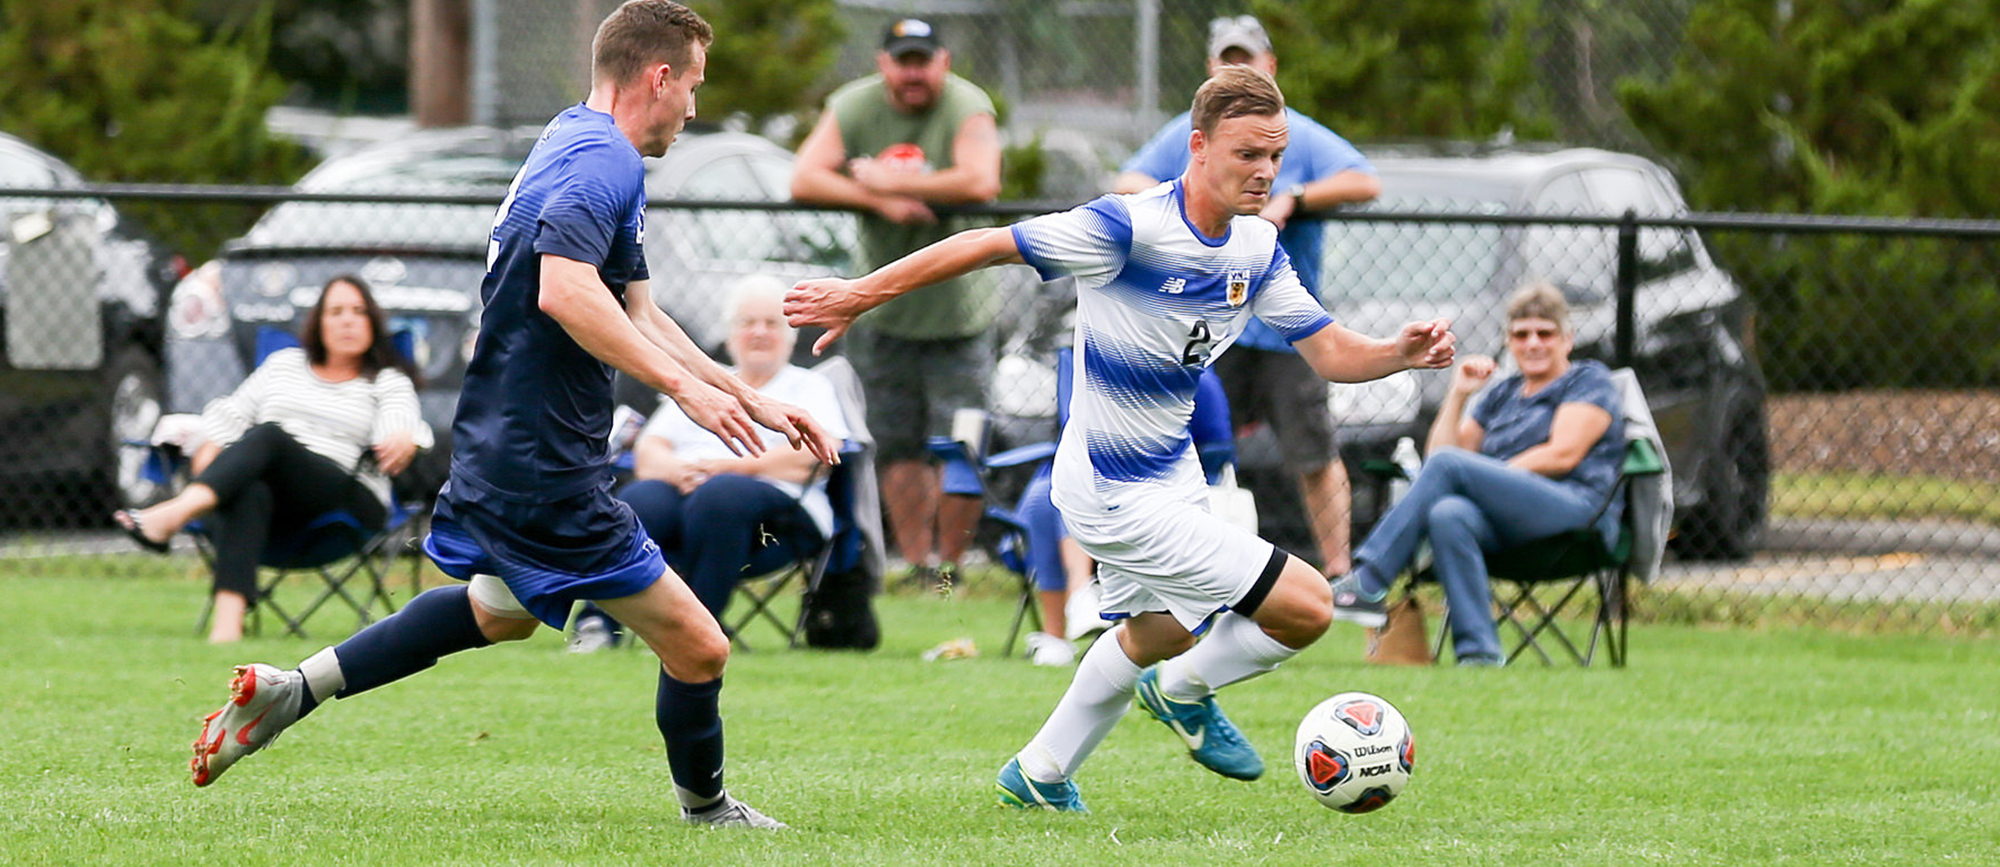 Junior Corey Brown scored his first goal of the season in Western New England's 3-2 overtime loss to Gordon College on Saturday. (Photo by Chris Marion)